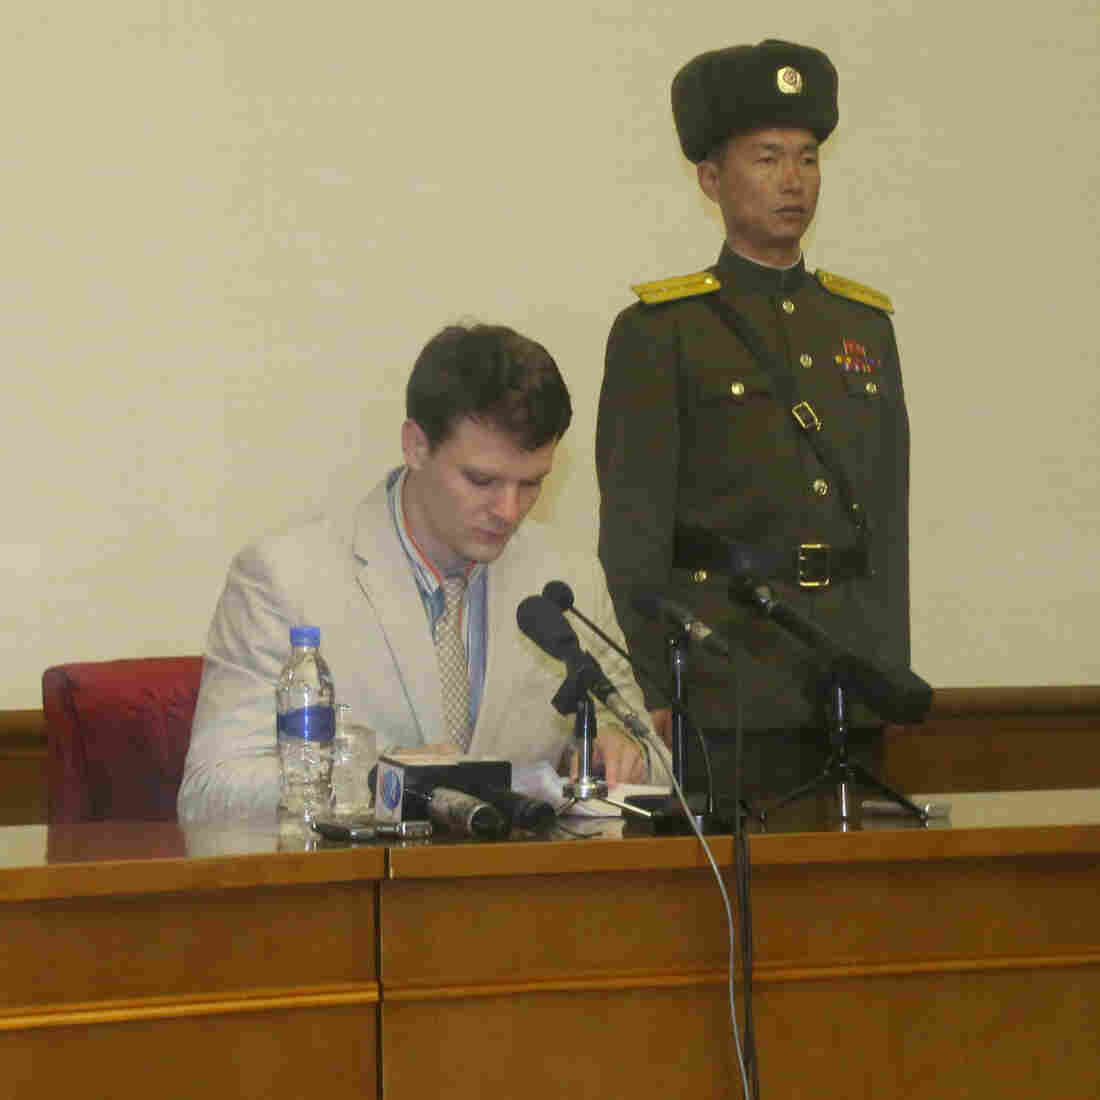 Otto Frederick Warmbier, a 21-year-old American student, speaks during a news conference in Pyongyang on Feb. 29.